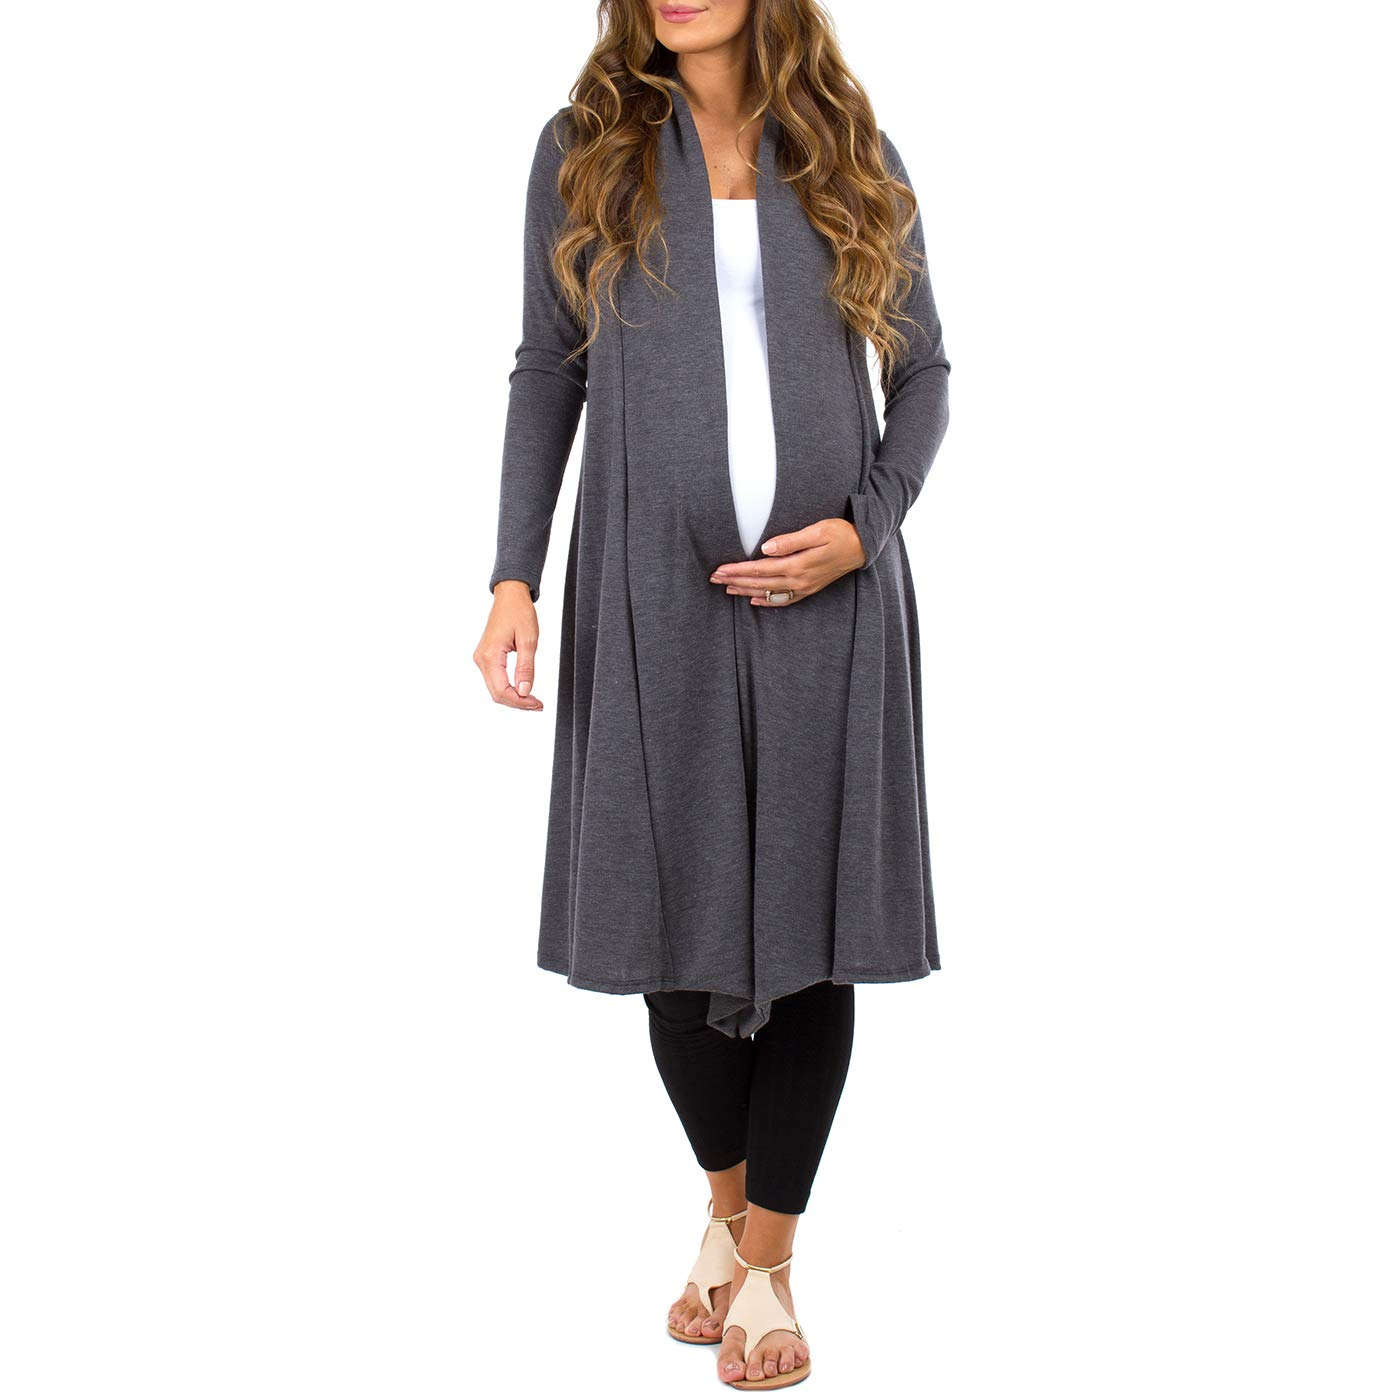 Women's Long Draped Maternity and Nursing Cardigan by Rags and Couture- Made in USA